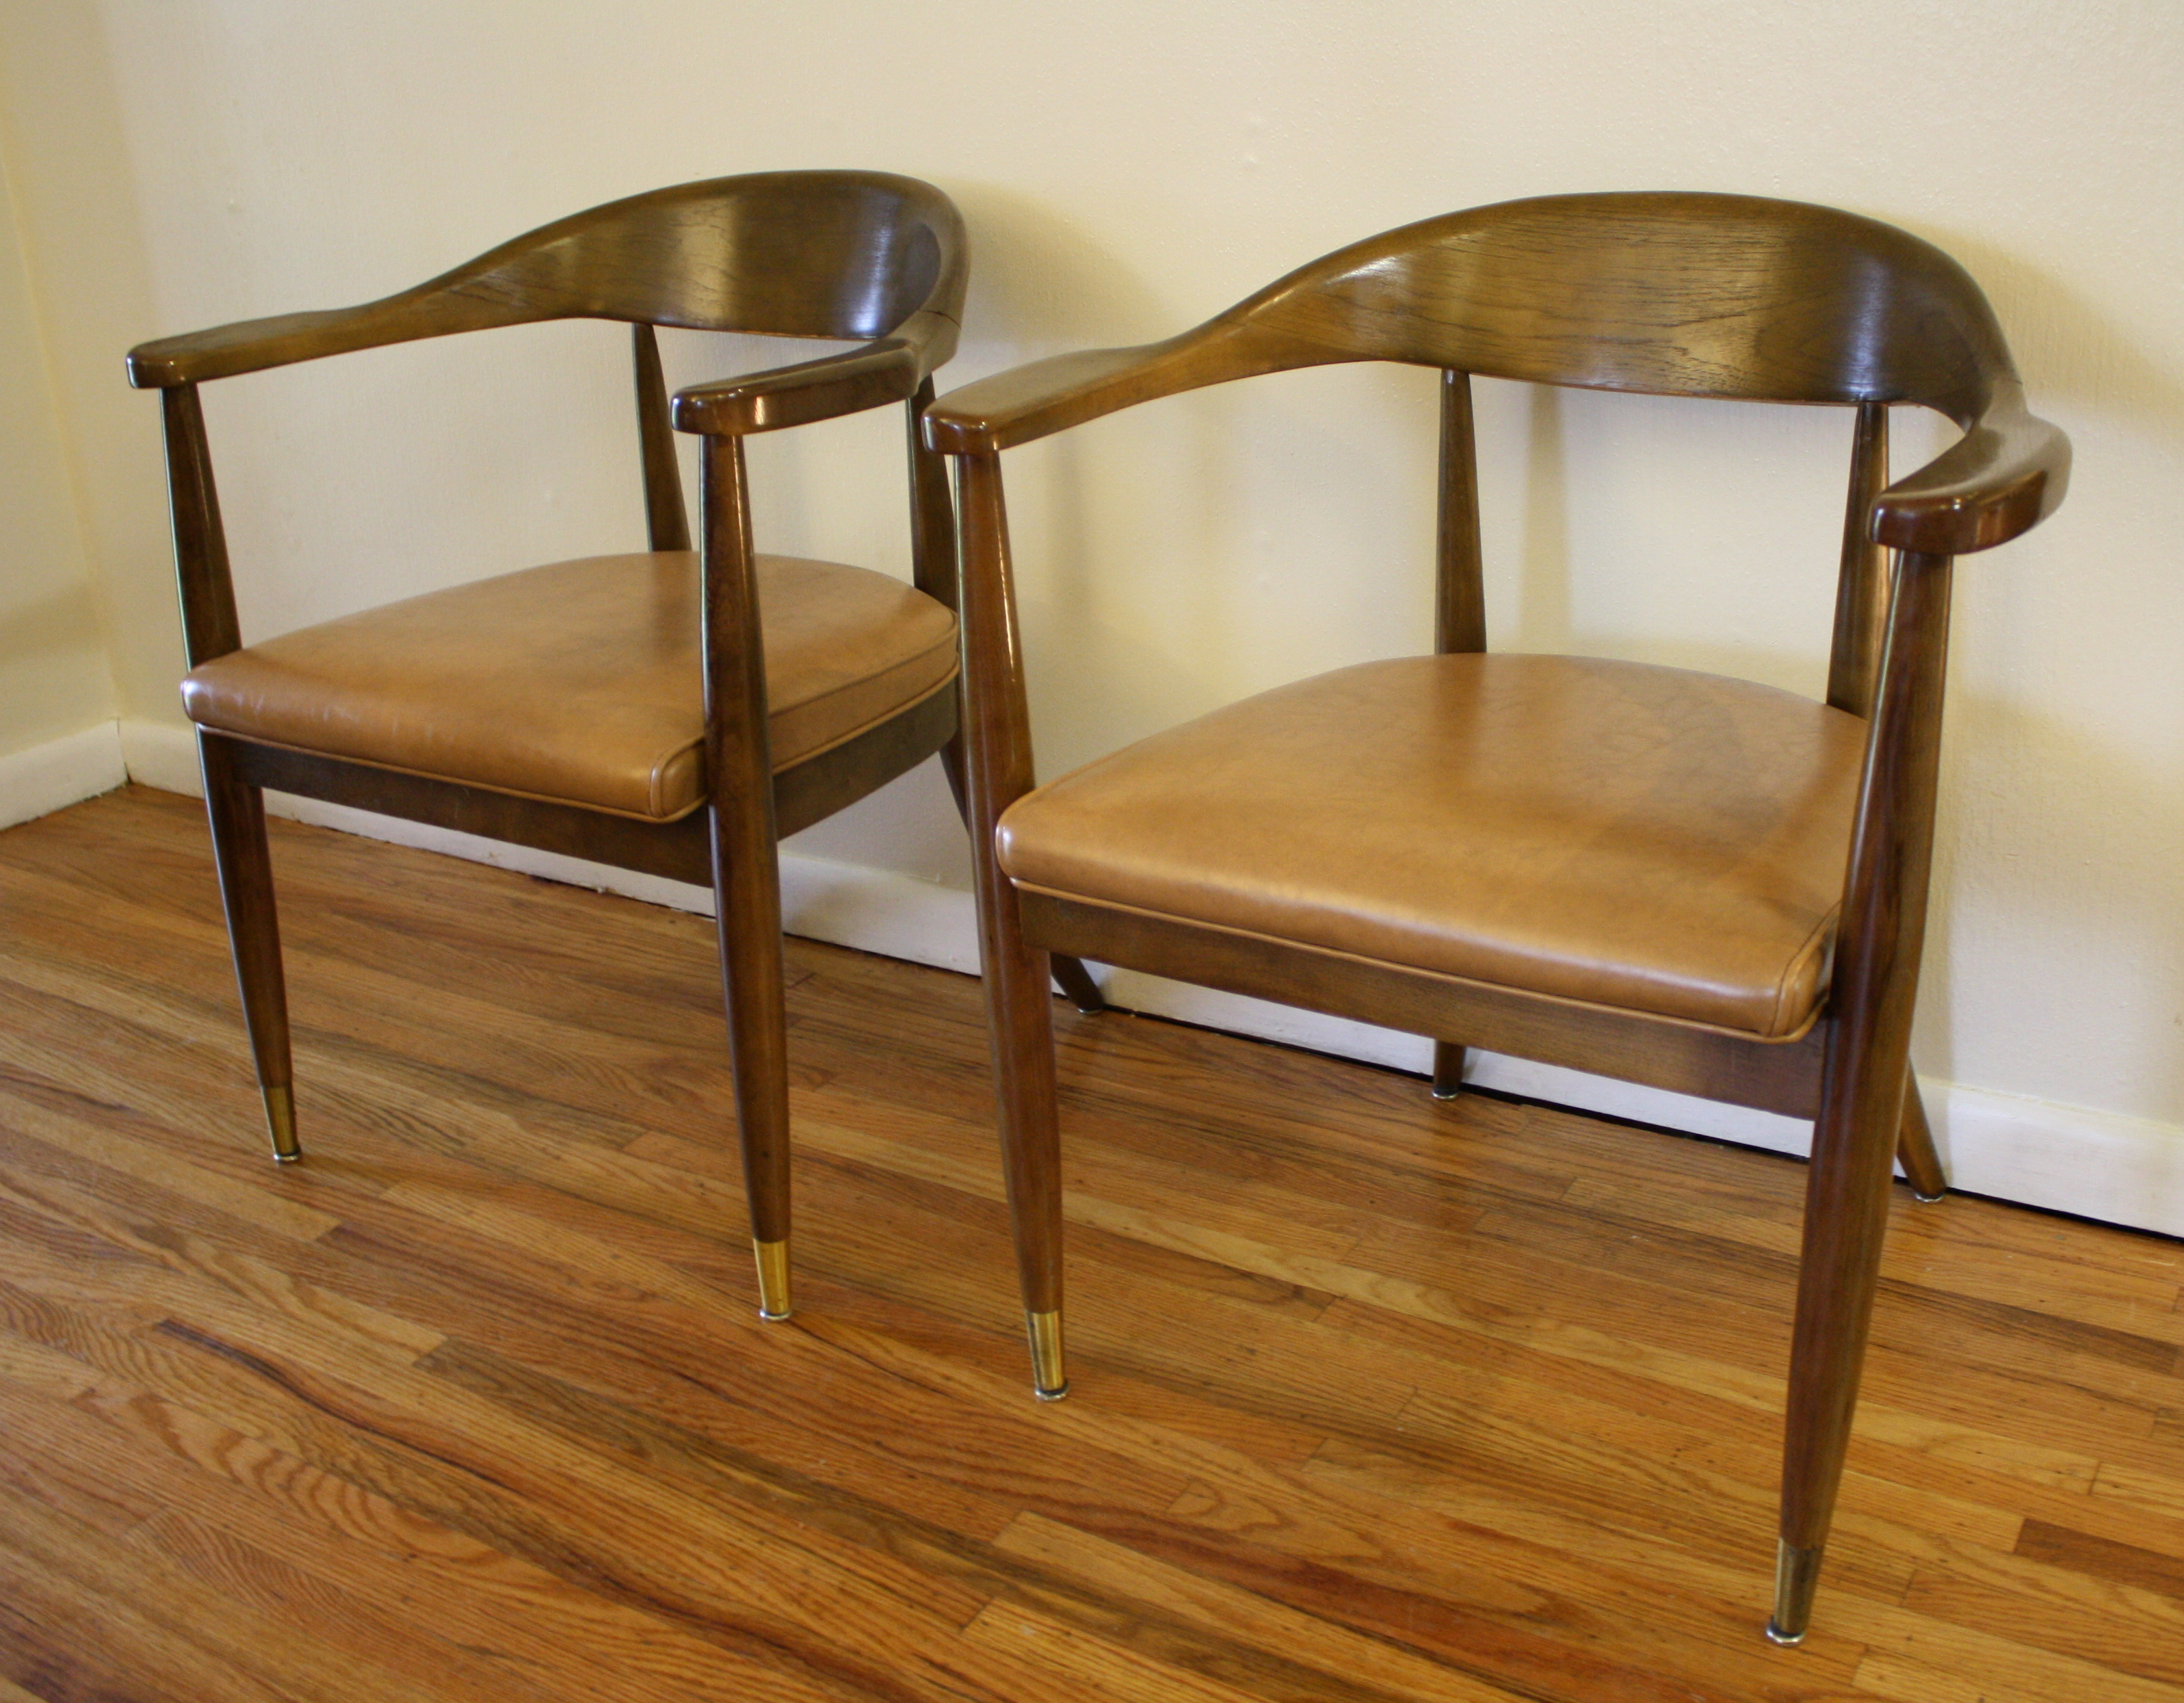 Mid century modern chairs by the boling chair company for New mid century modern furniture